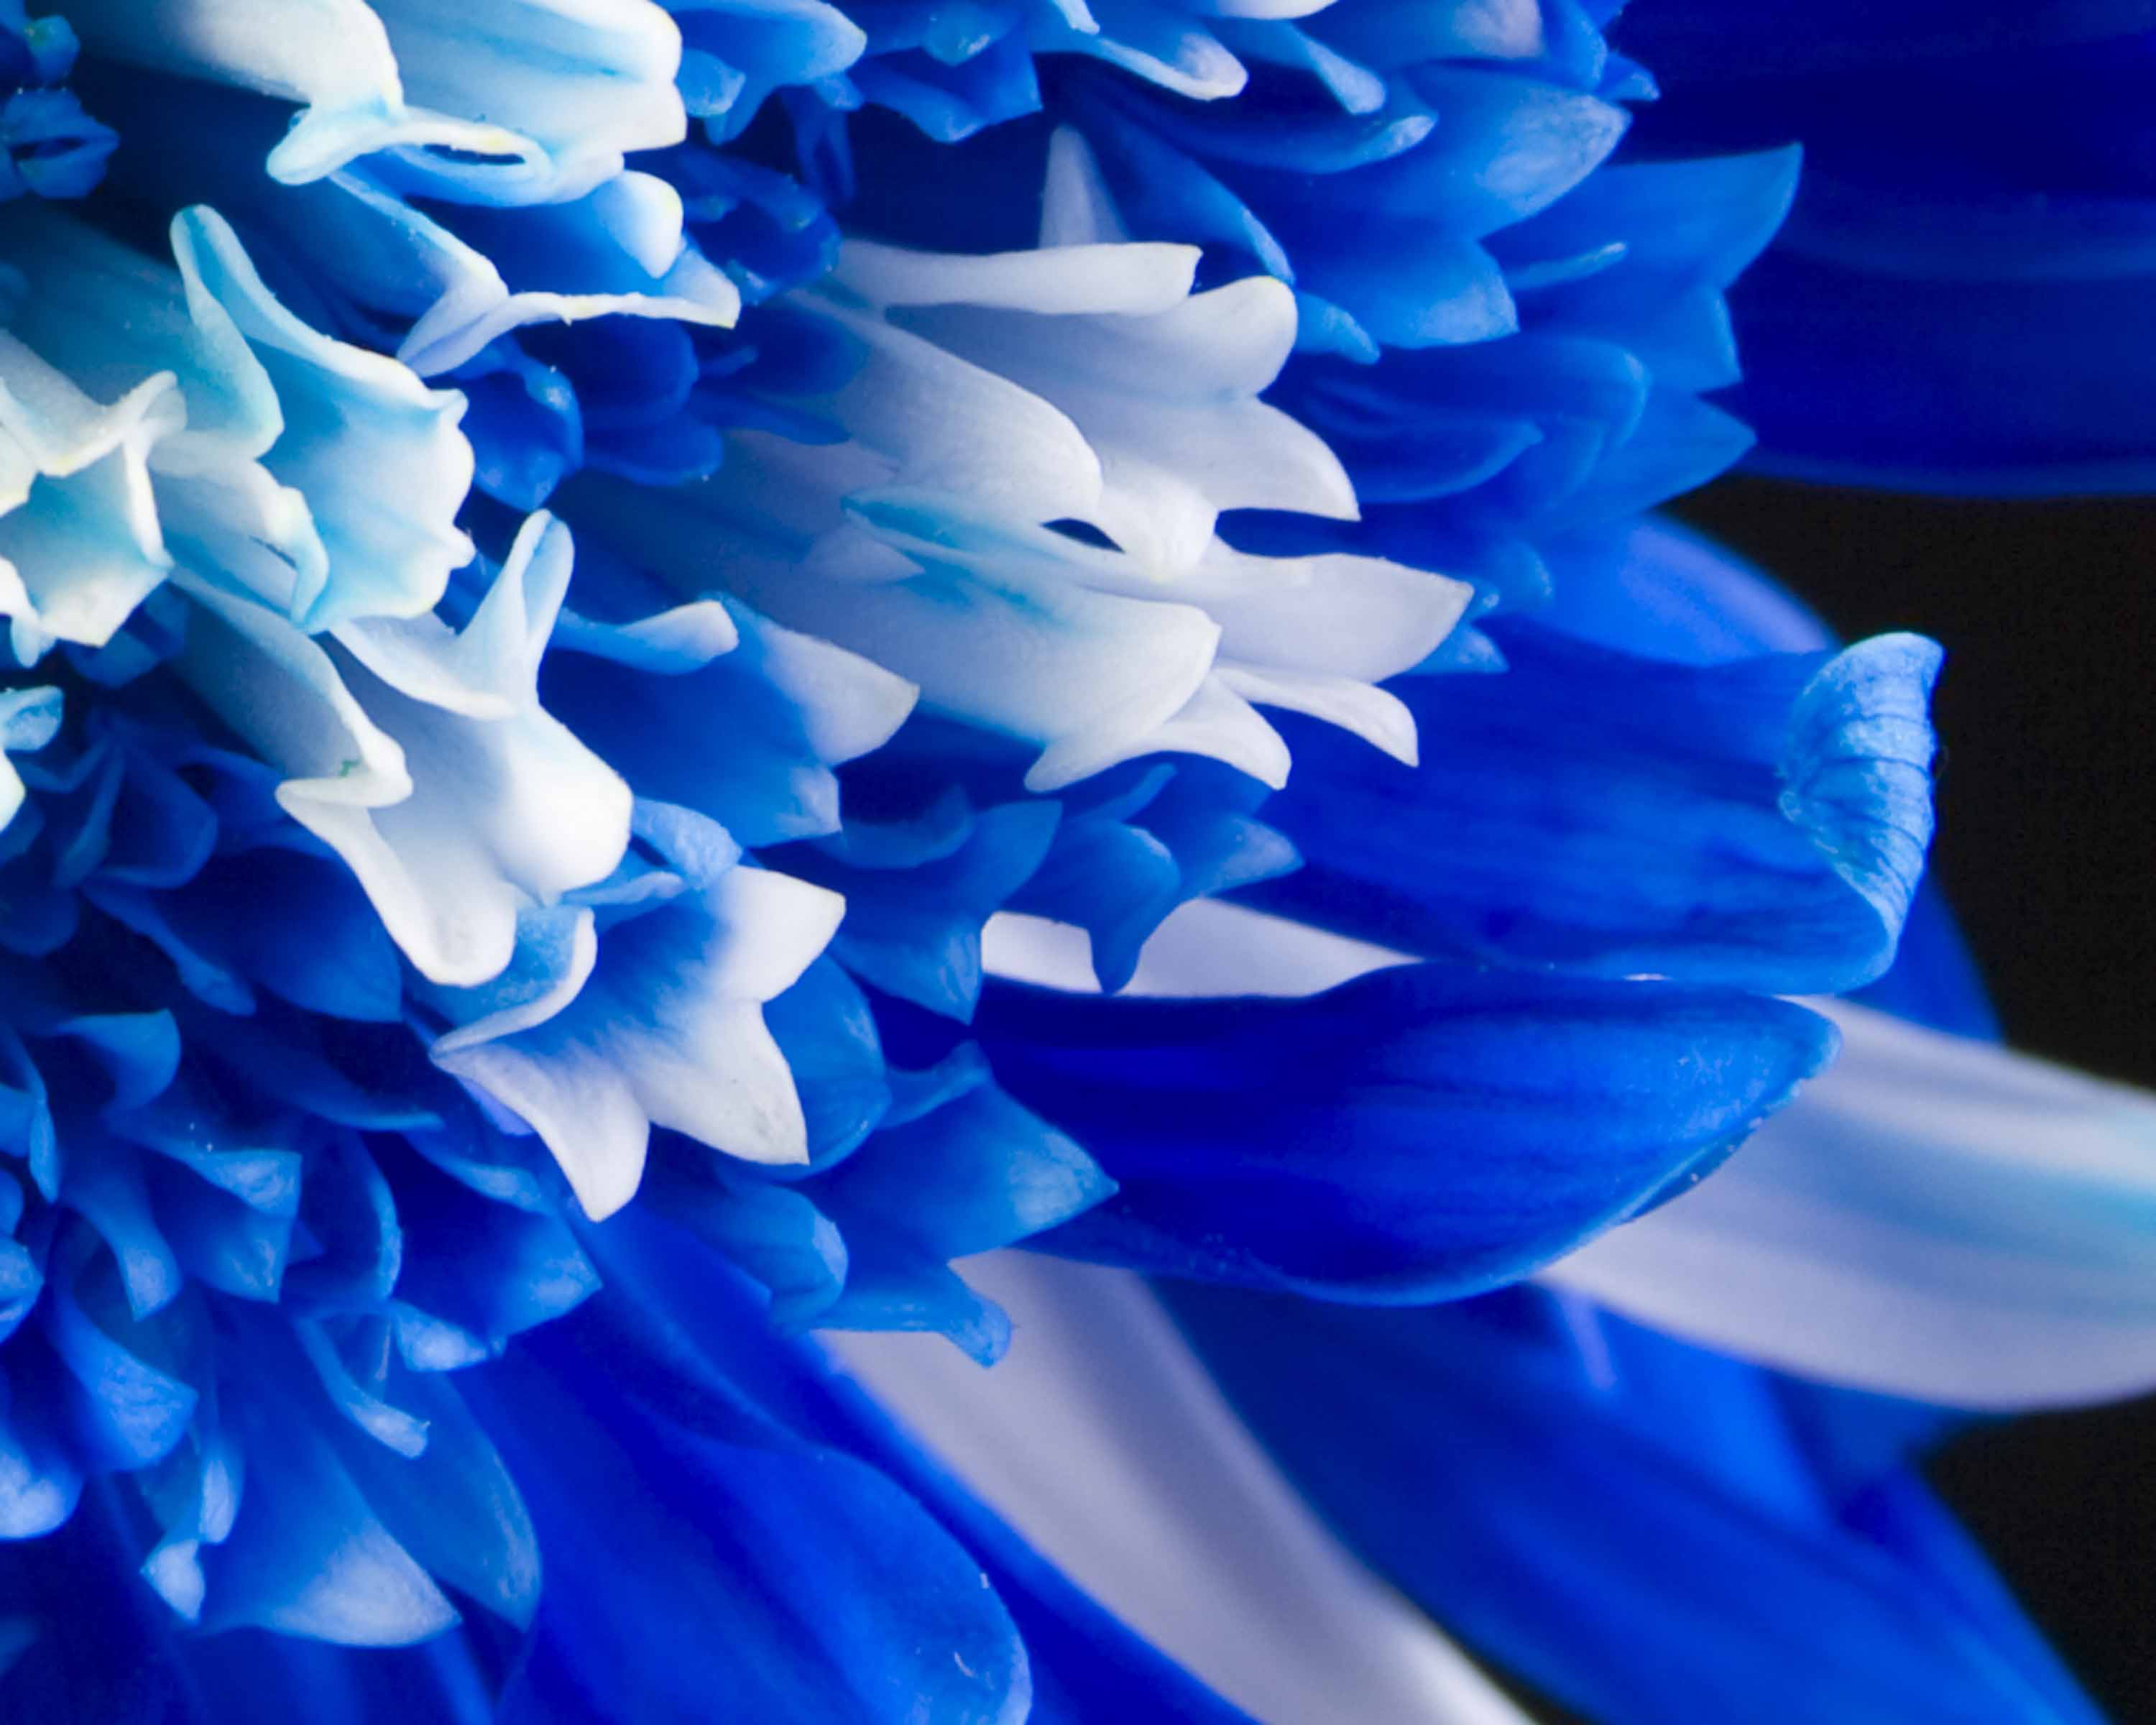 Blue Flowers Pictures And Names Widescreen 2 HD Wallpapers